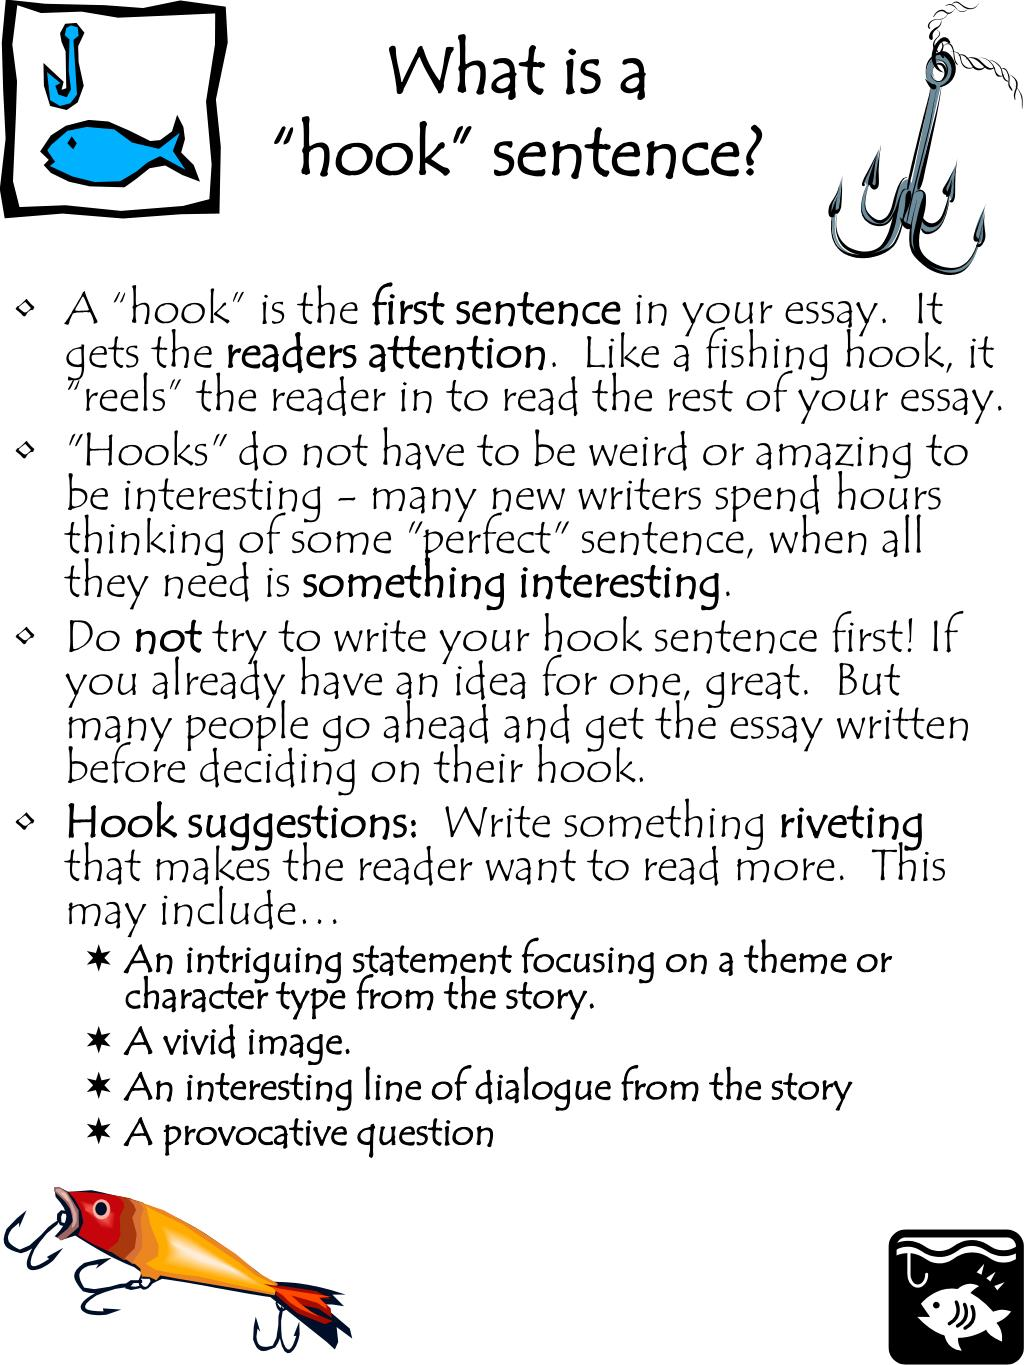 What is a hook in an essay